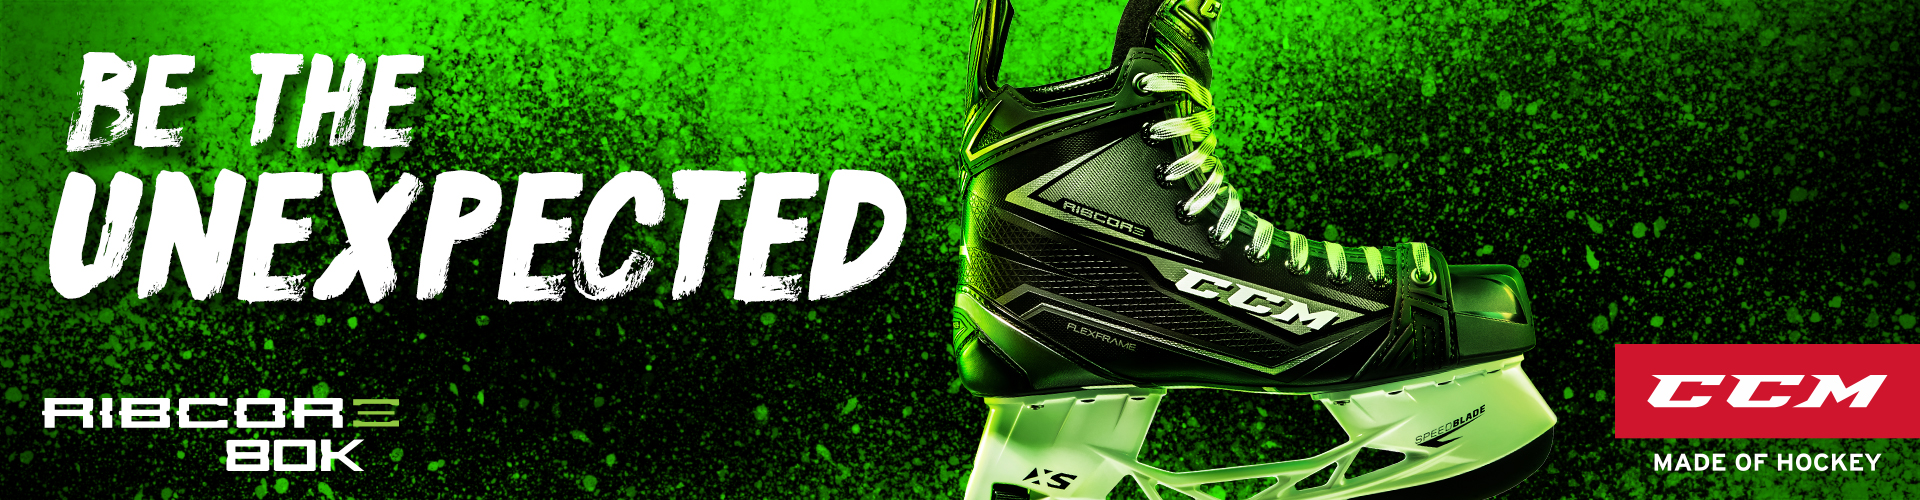 Shop The CCM Ribcor 80K Hockey Skates Available For Sale At Your Closest Source For Sports Hockey Store Near You.